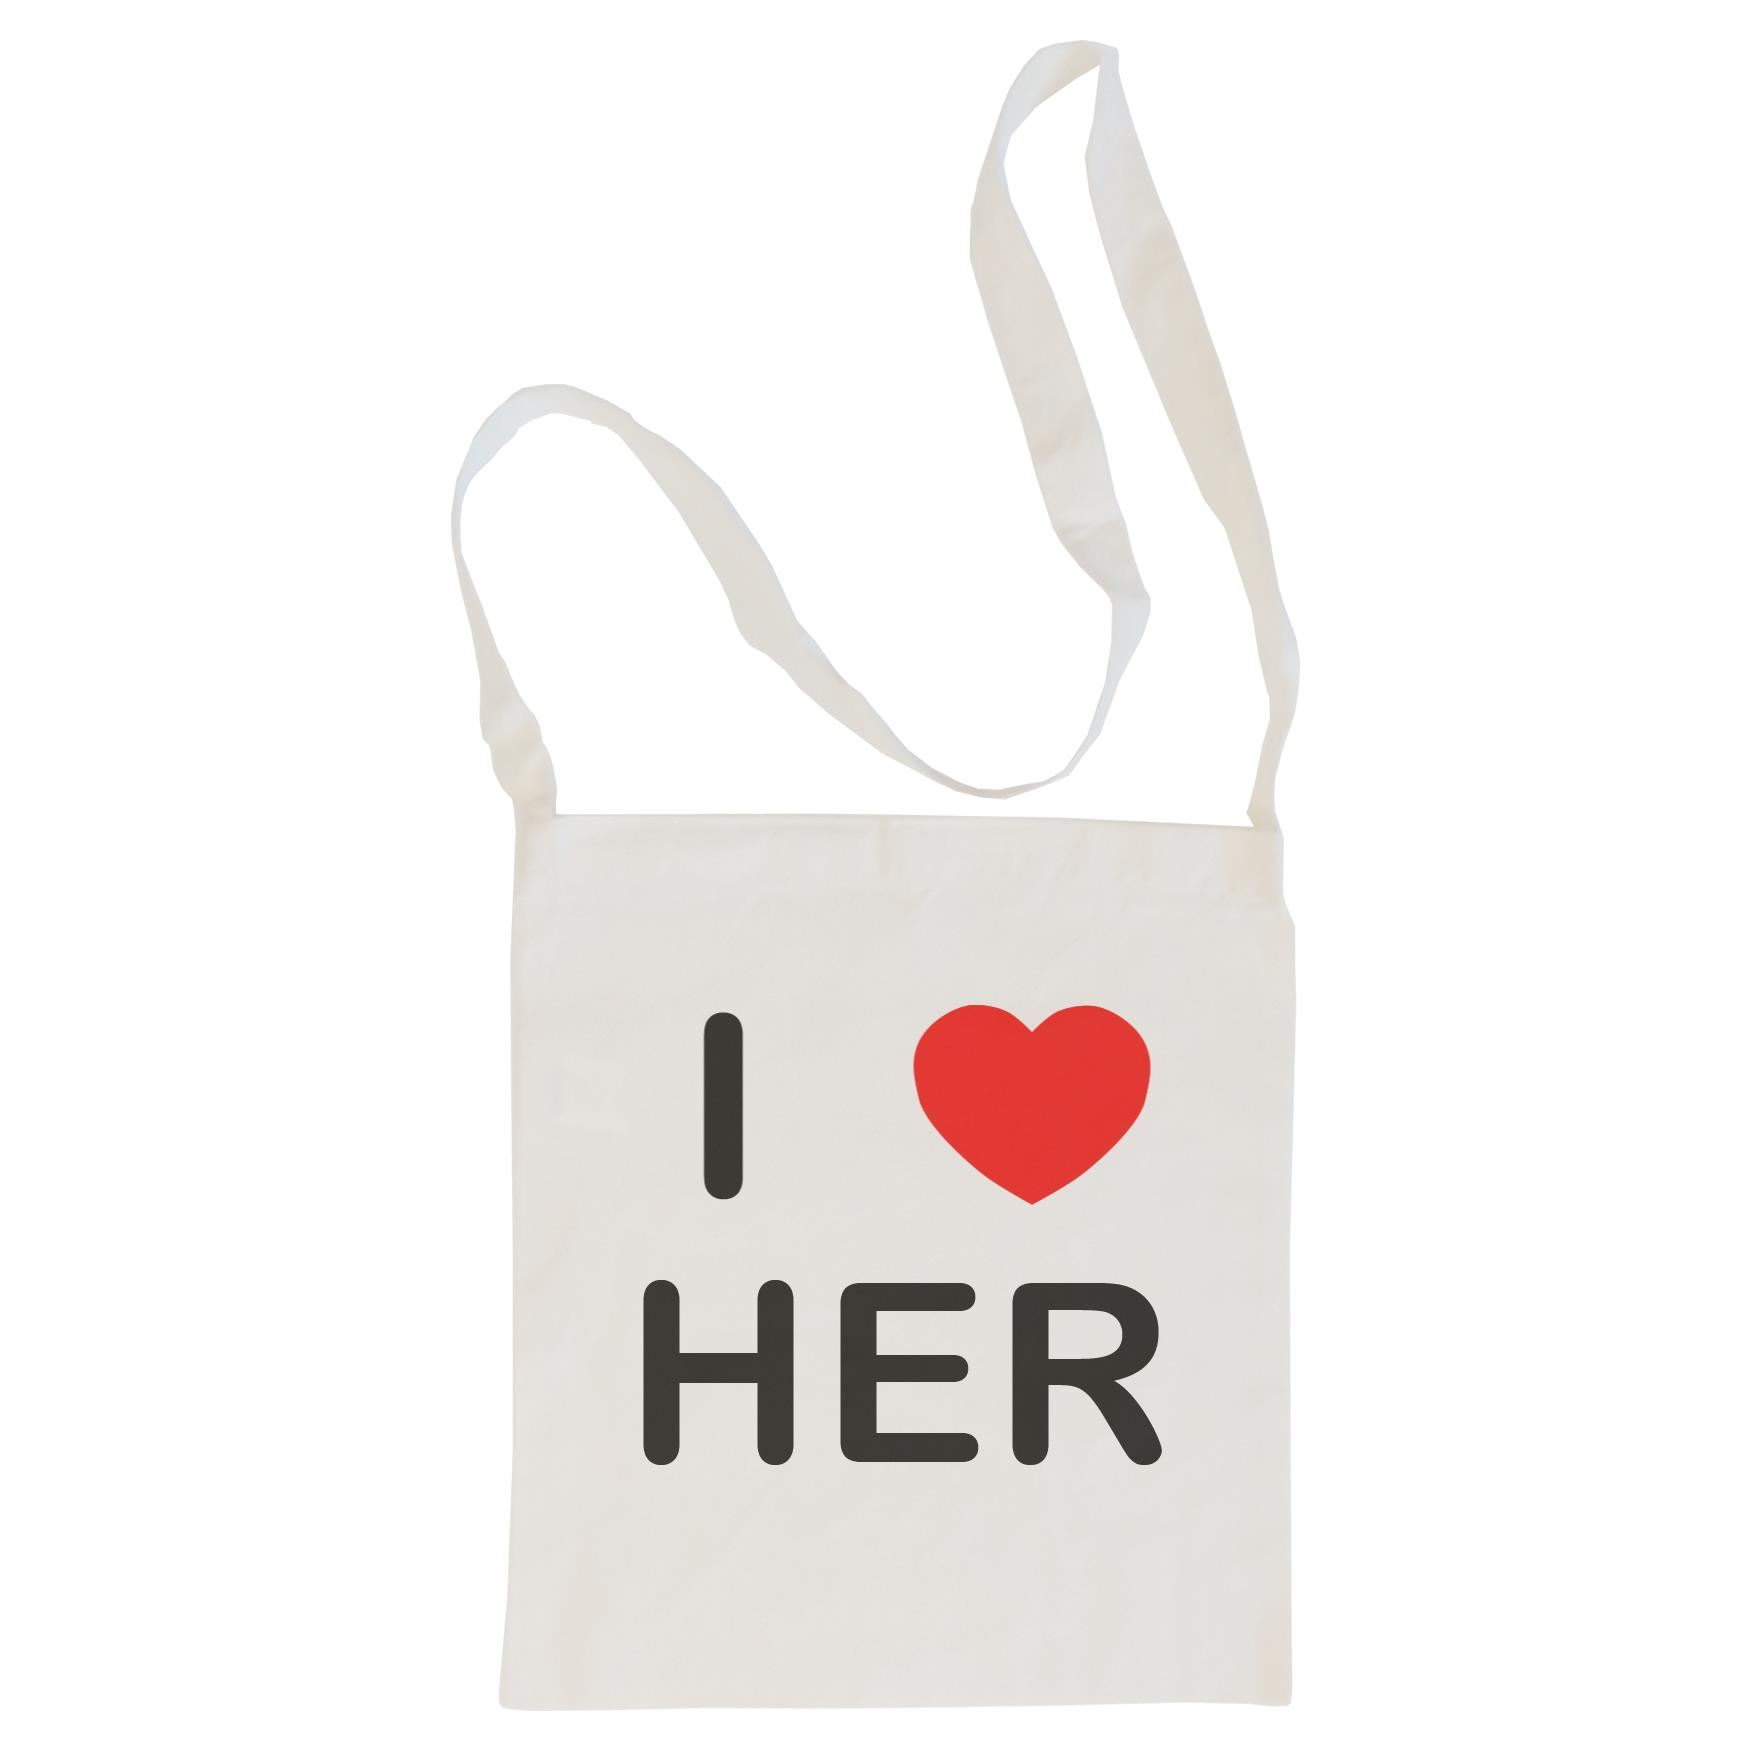 I Love Her - Cotton Bag | Size choice Tote, Shopper or Sling